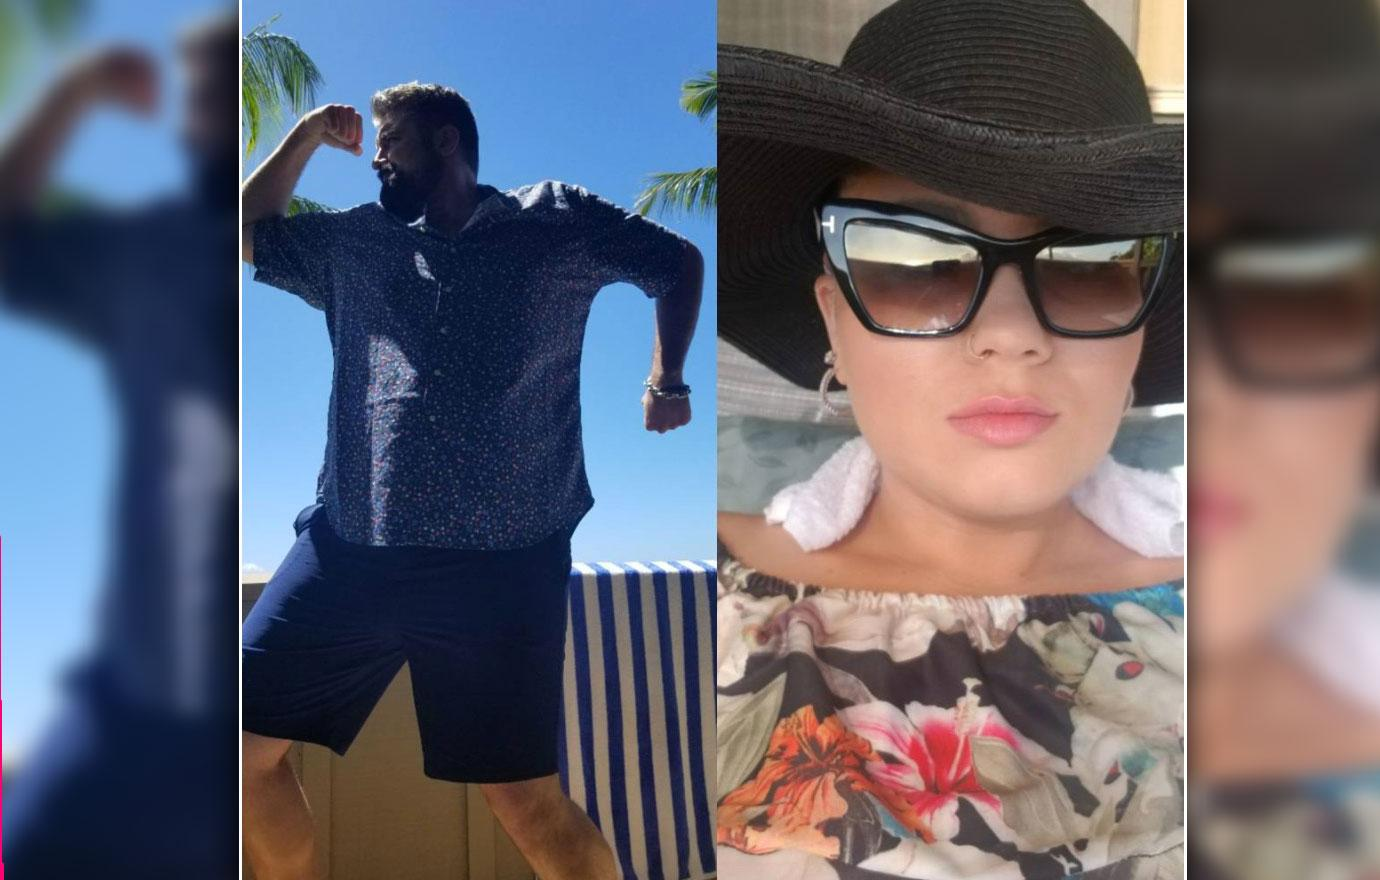 mber Portwood Hawaii Vacation With Boyfriend Andrew Glennon Teen Mom